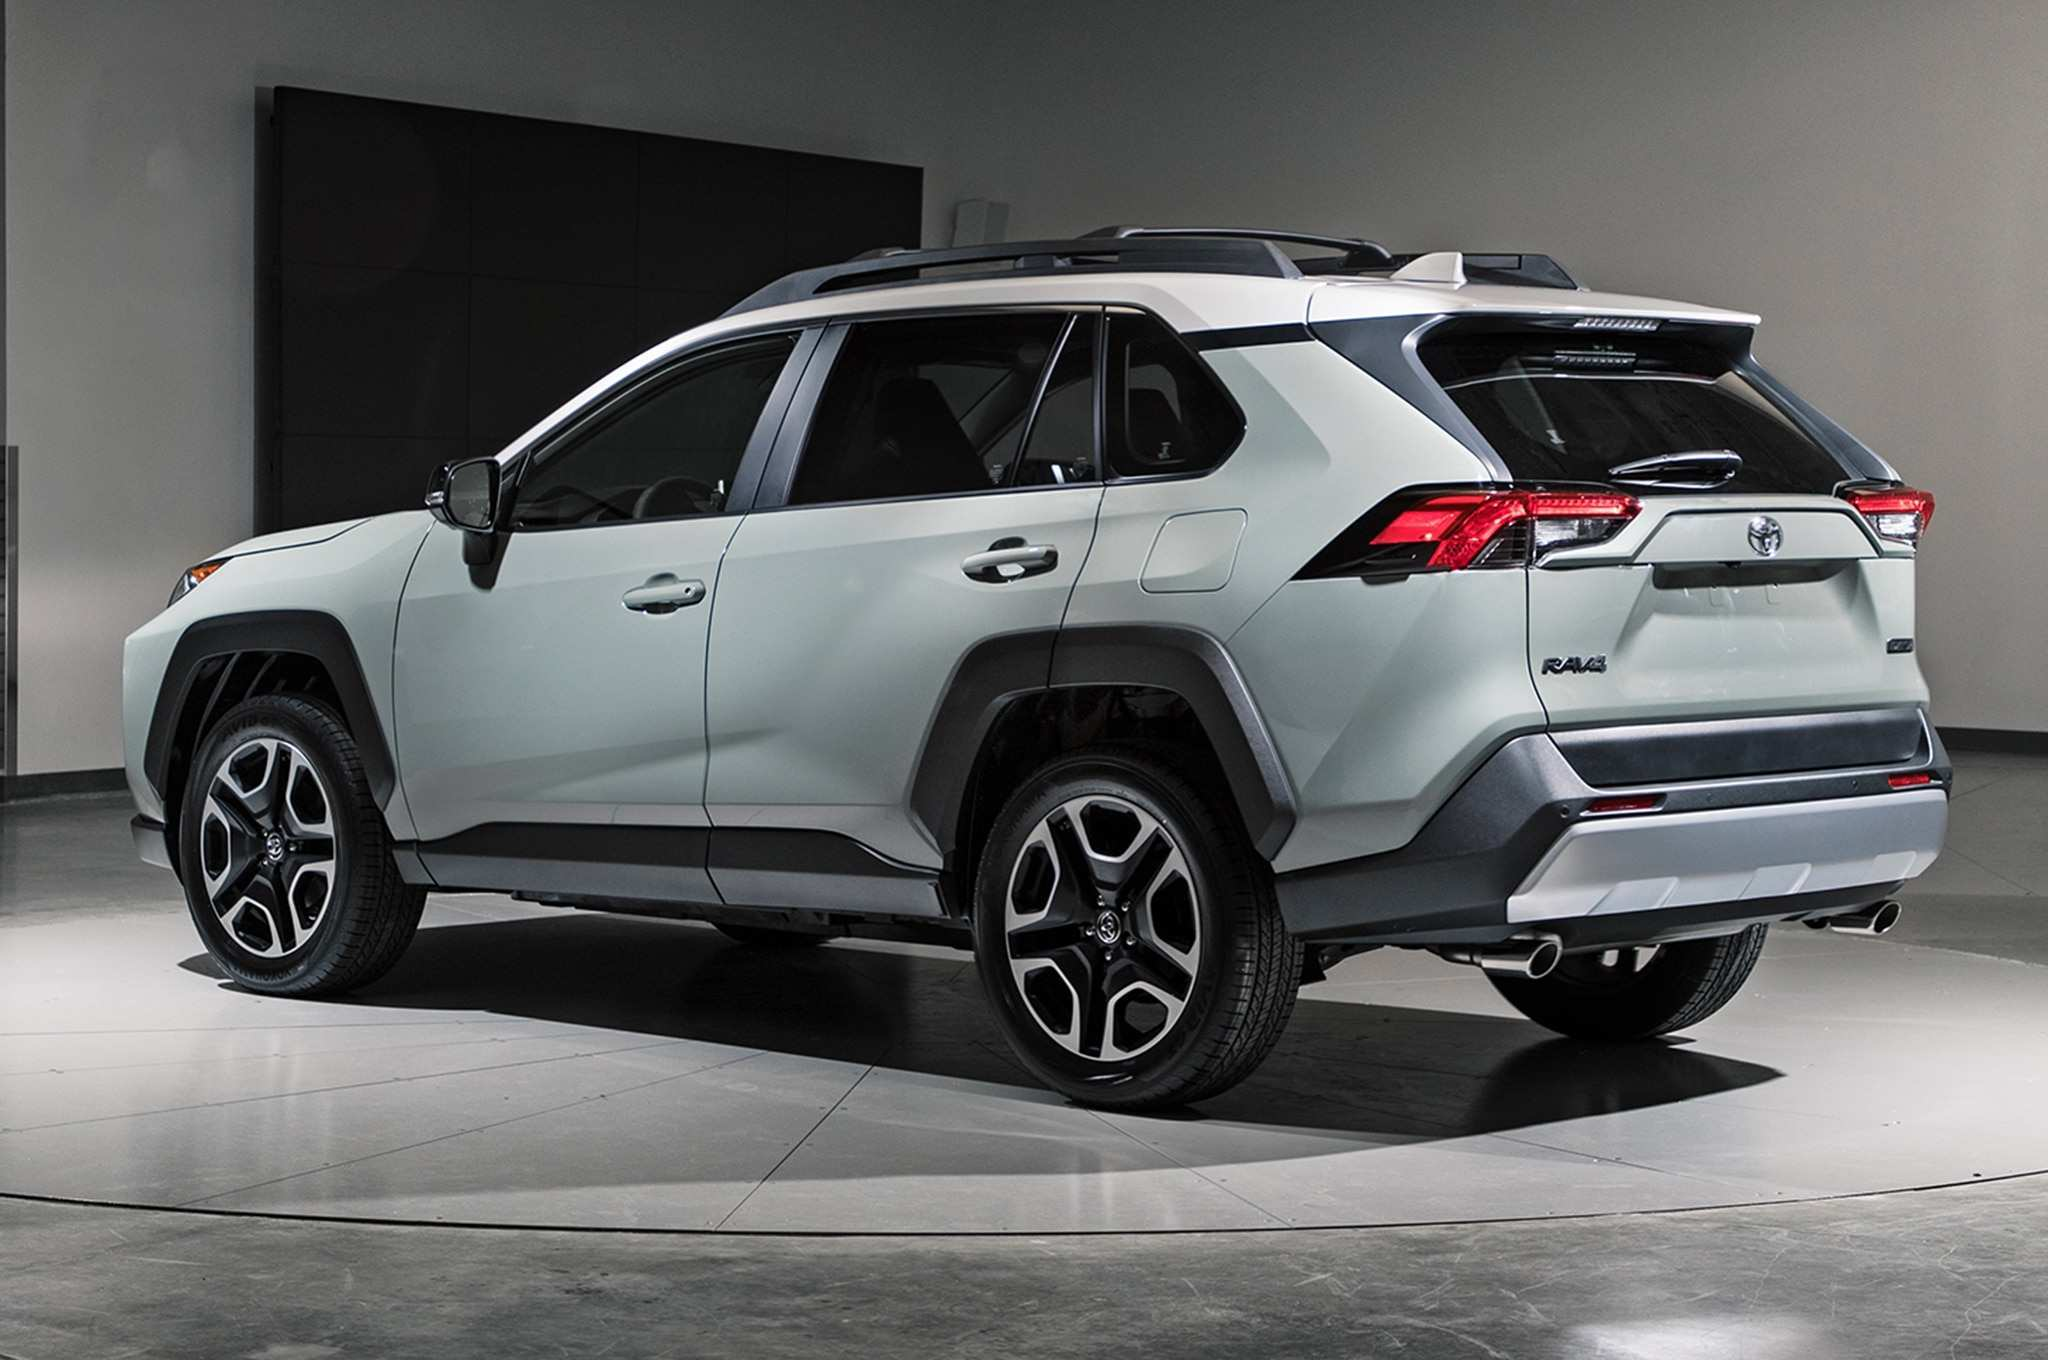 57 The 2019 Toyota RAV4 Pictures